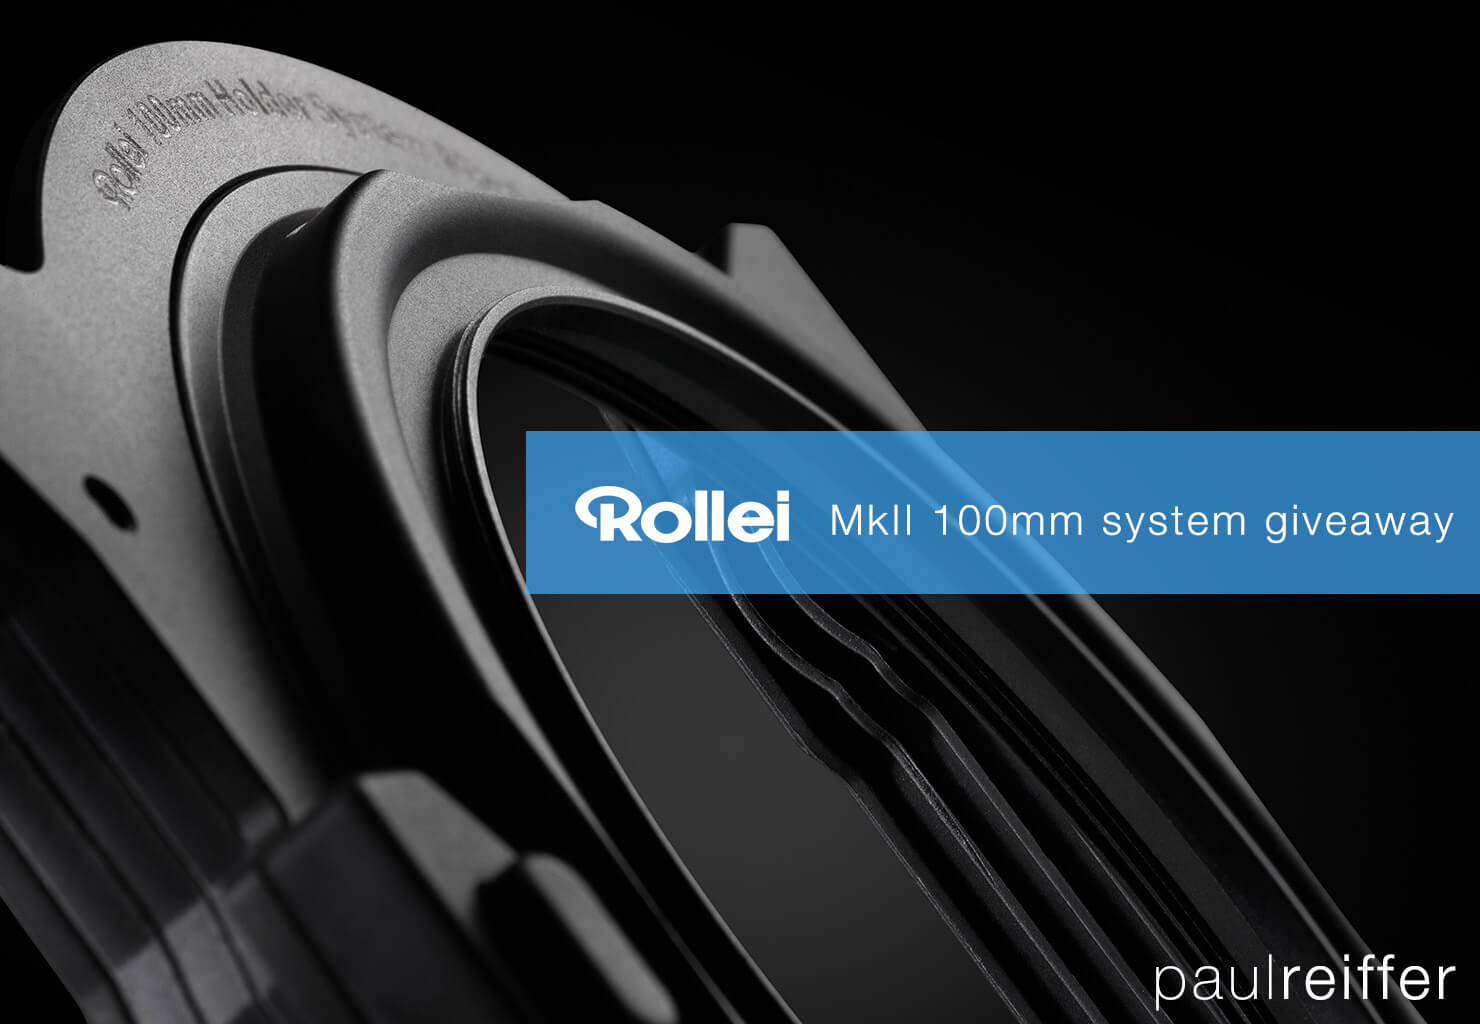 rollei mark ii 2 100mm filter system giveaway banner paul reiffer photographer october 2017 launch competition